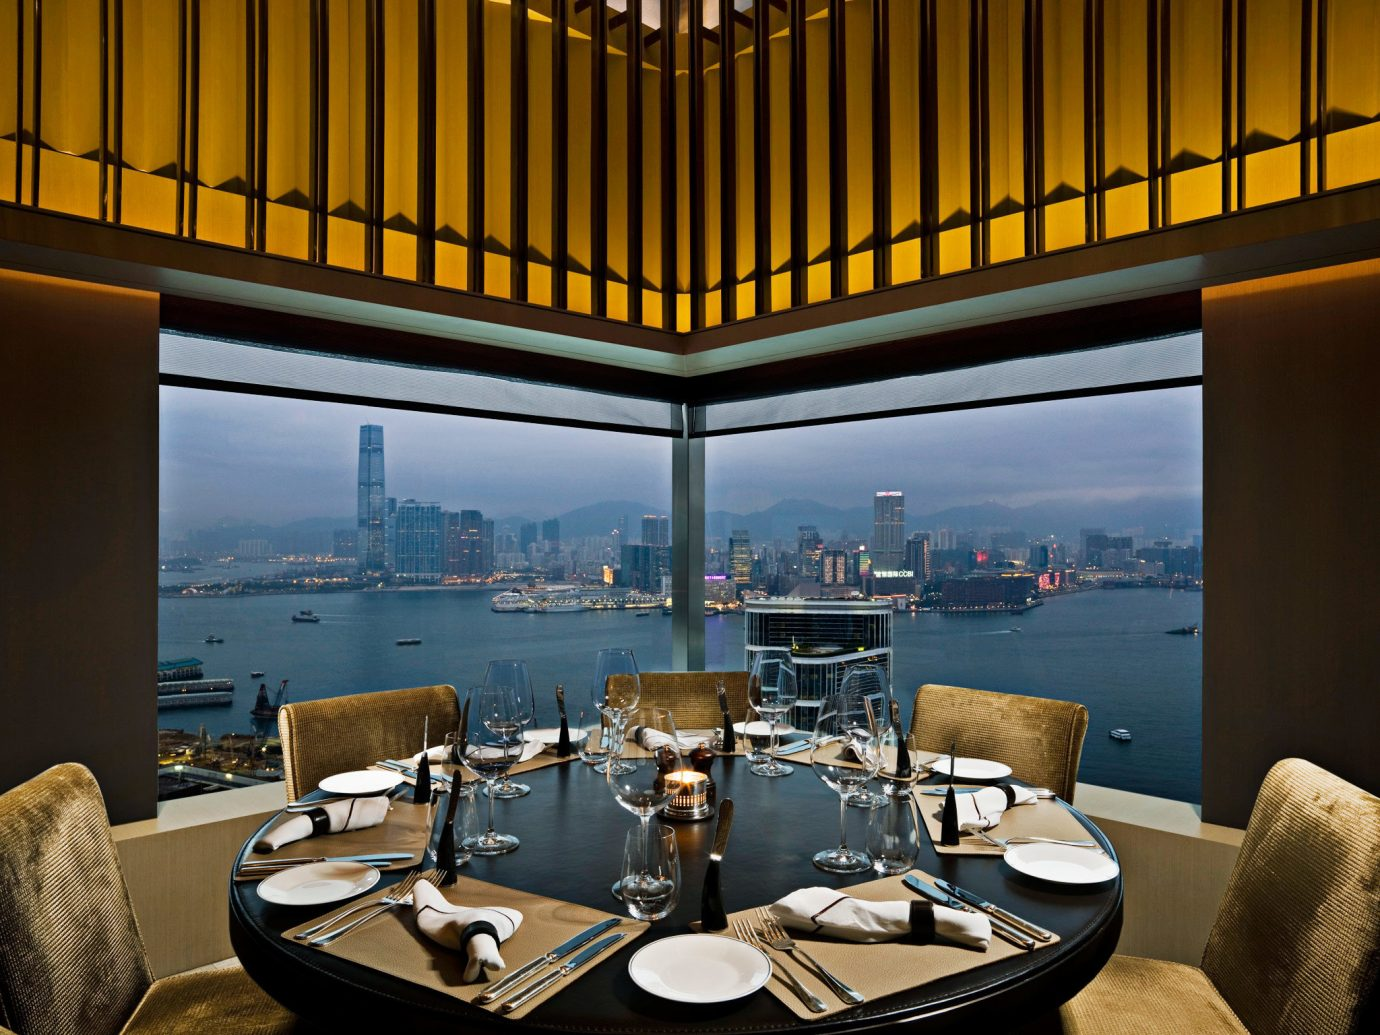 City Dining Drink Eat Food + Drink Scenic views Waterfront room dining room living room interior design restaurant estate lighting home Design Lobby window covering Suite window several